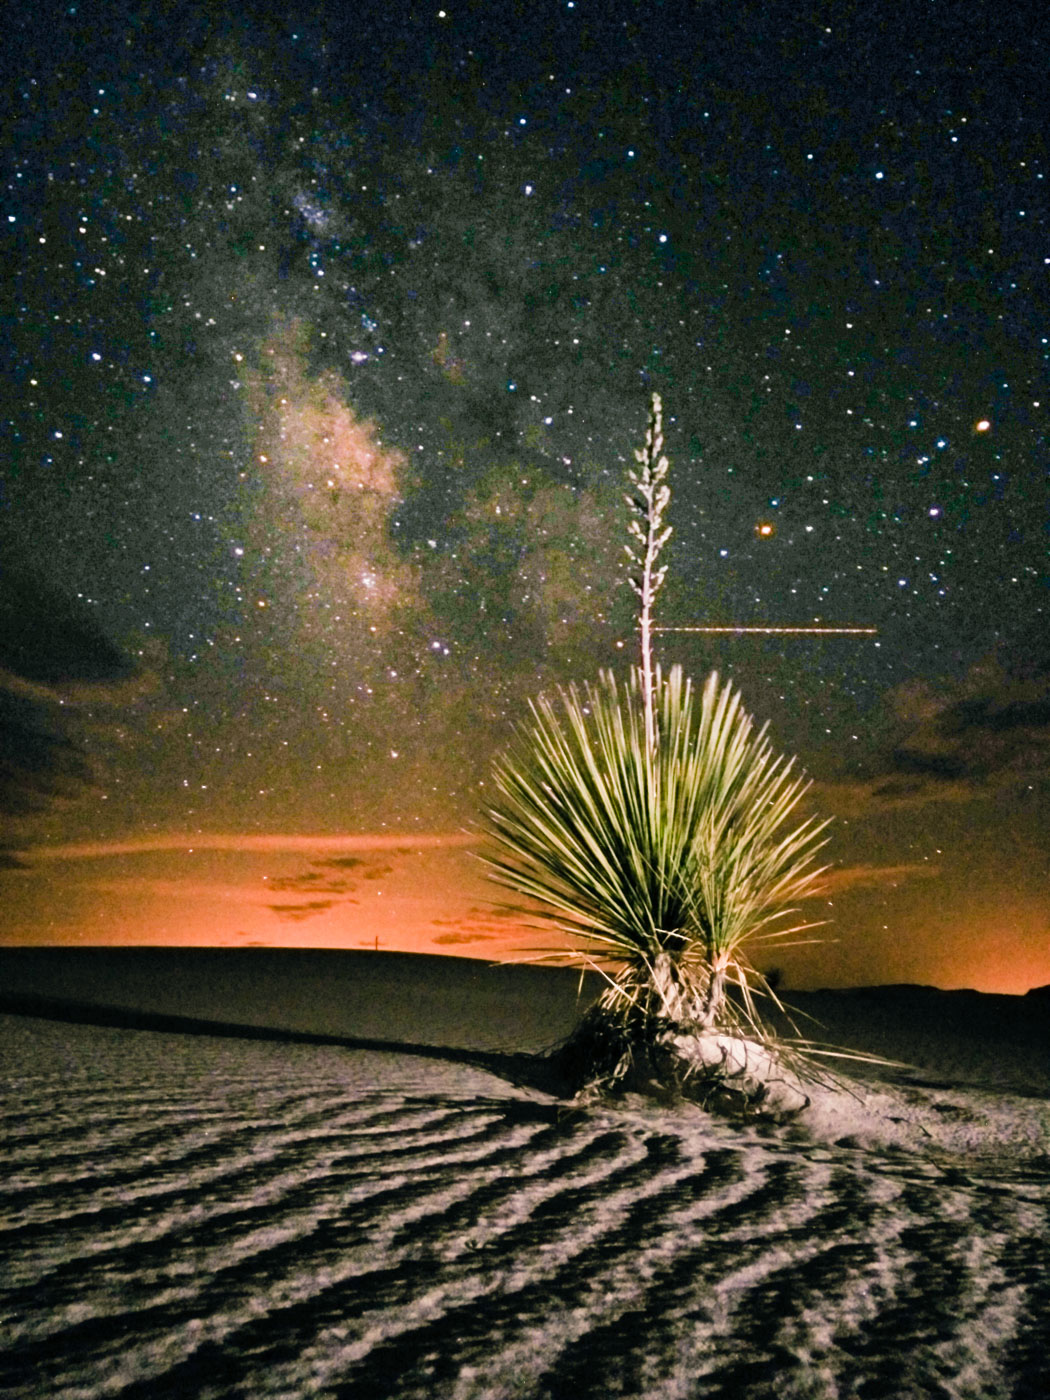 Photographing The Milky Way With A Smartphone And The Future